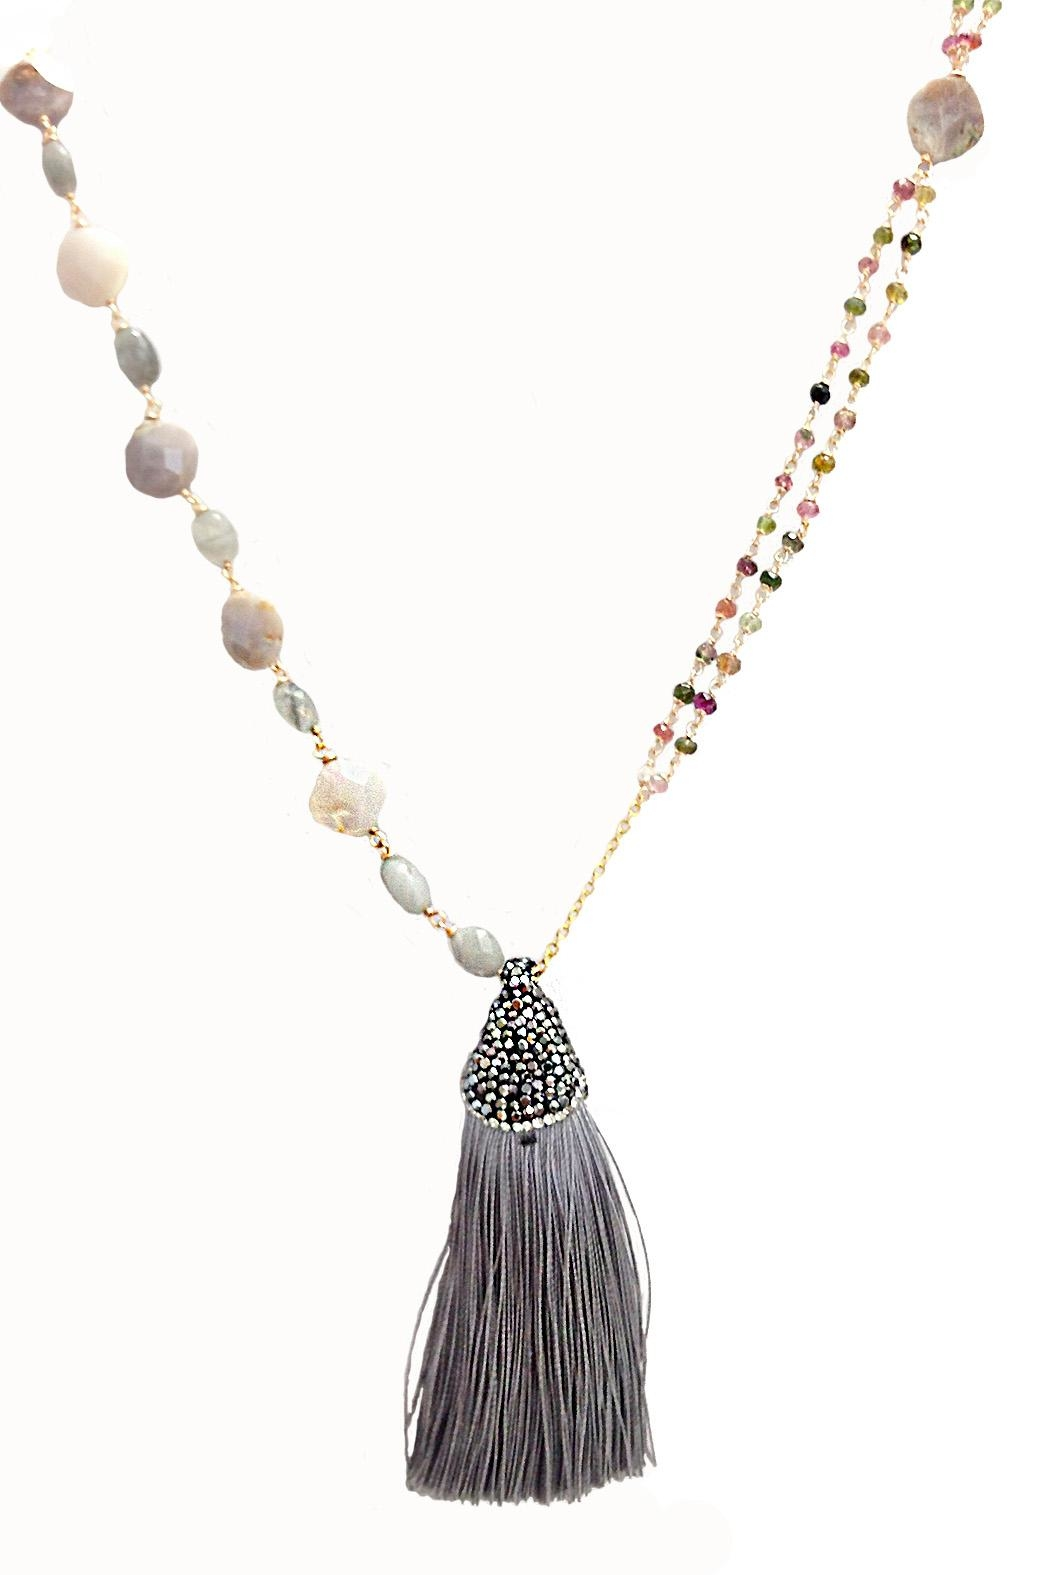 TINK TINK Stones Tassel Necklace - Main Image